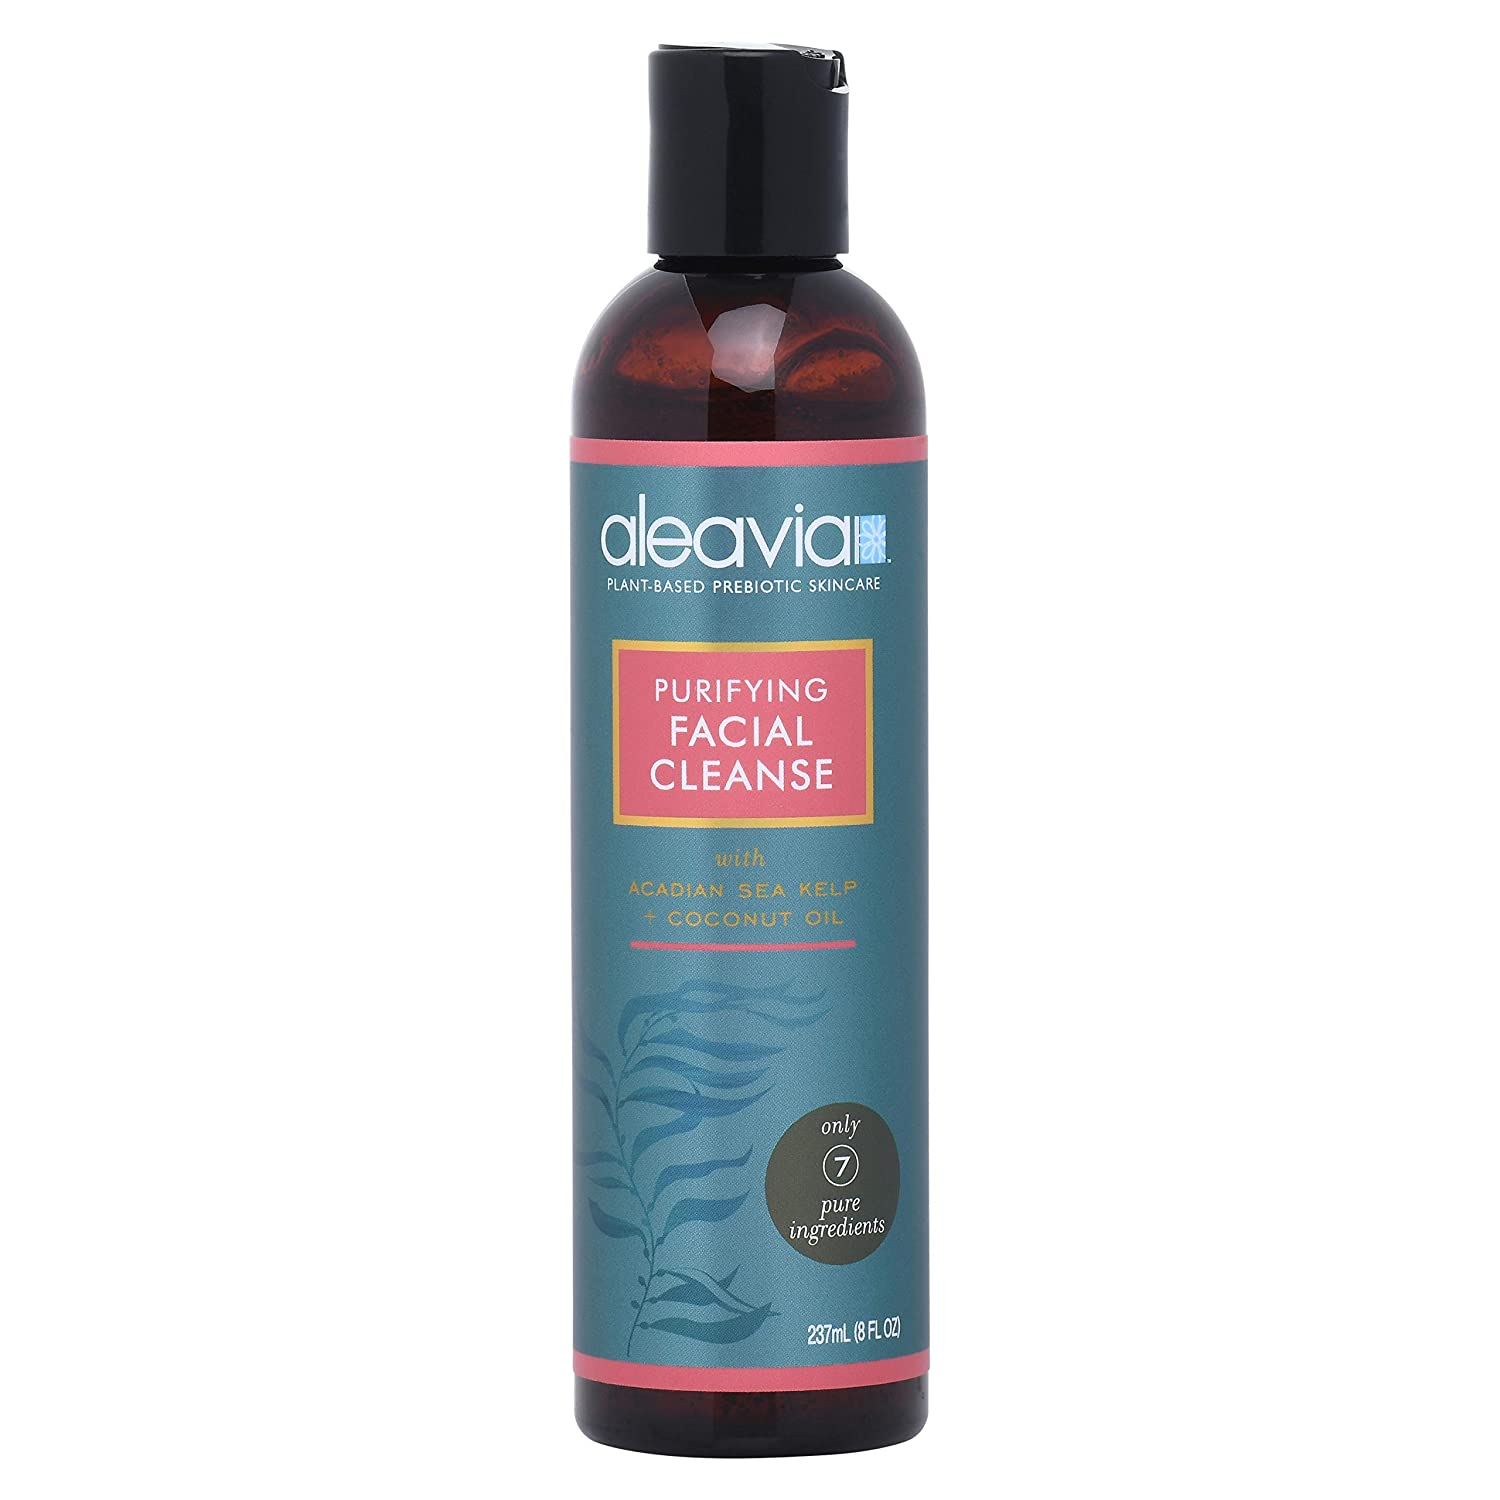 Purifying Organic Facial Cleanser   Aleavia Presents The Leading Facial Wash Treatment Made With Aloe Vera To Prevent Acne & Oily Skin   Exfoliate & H